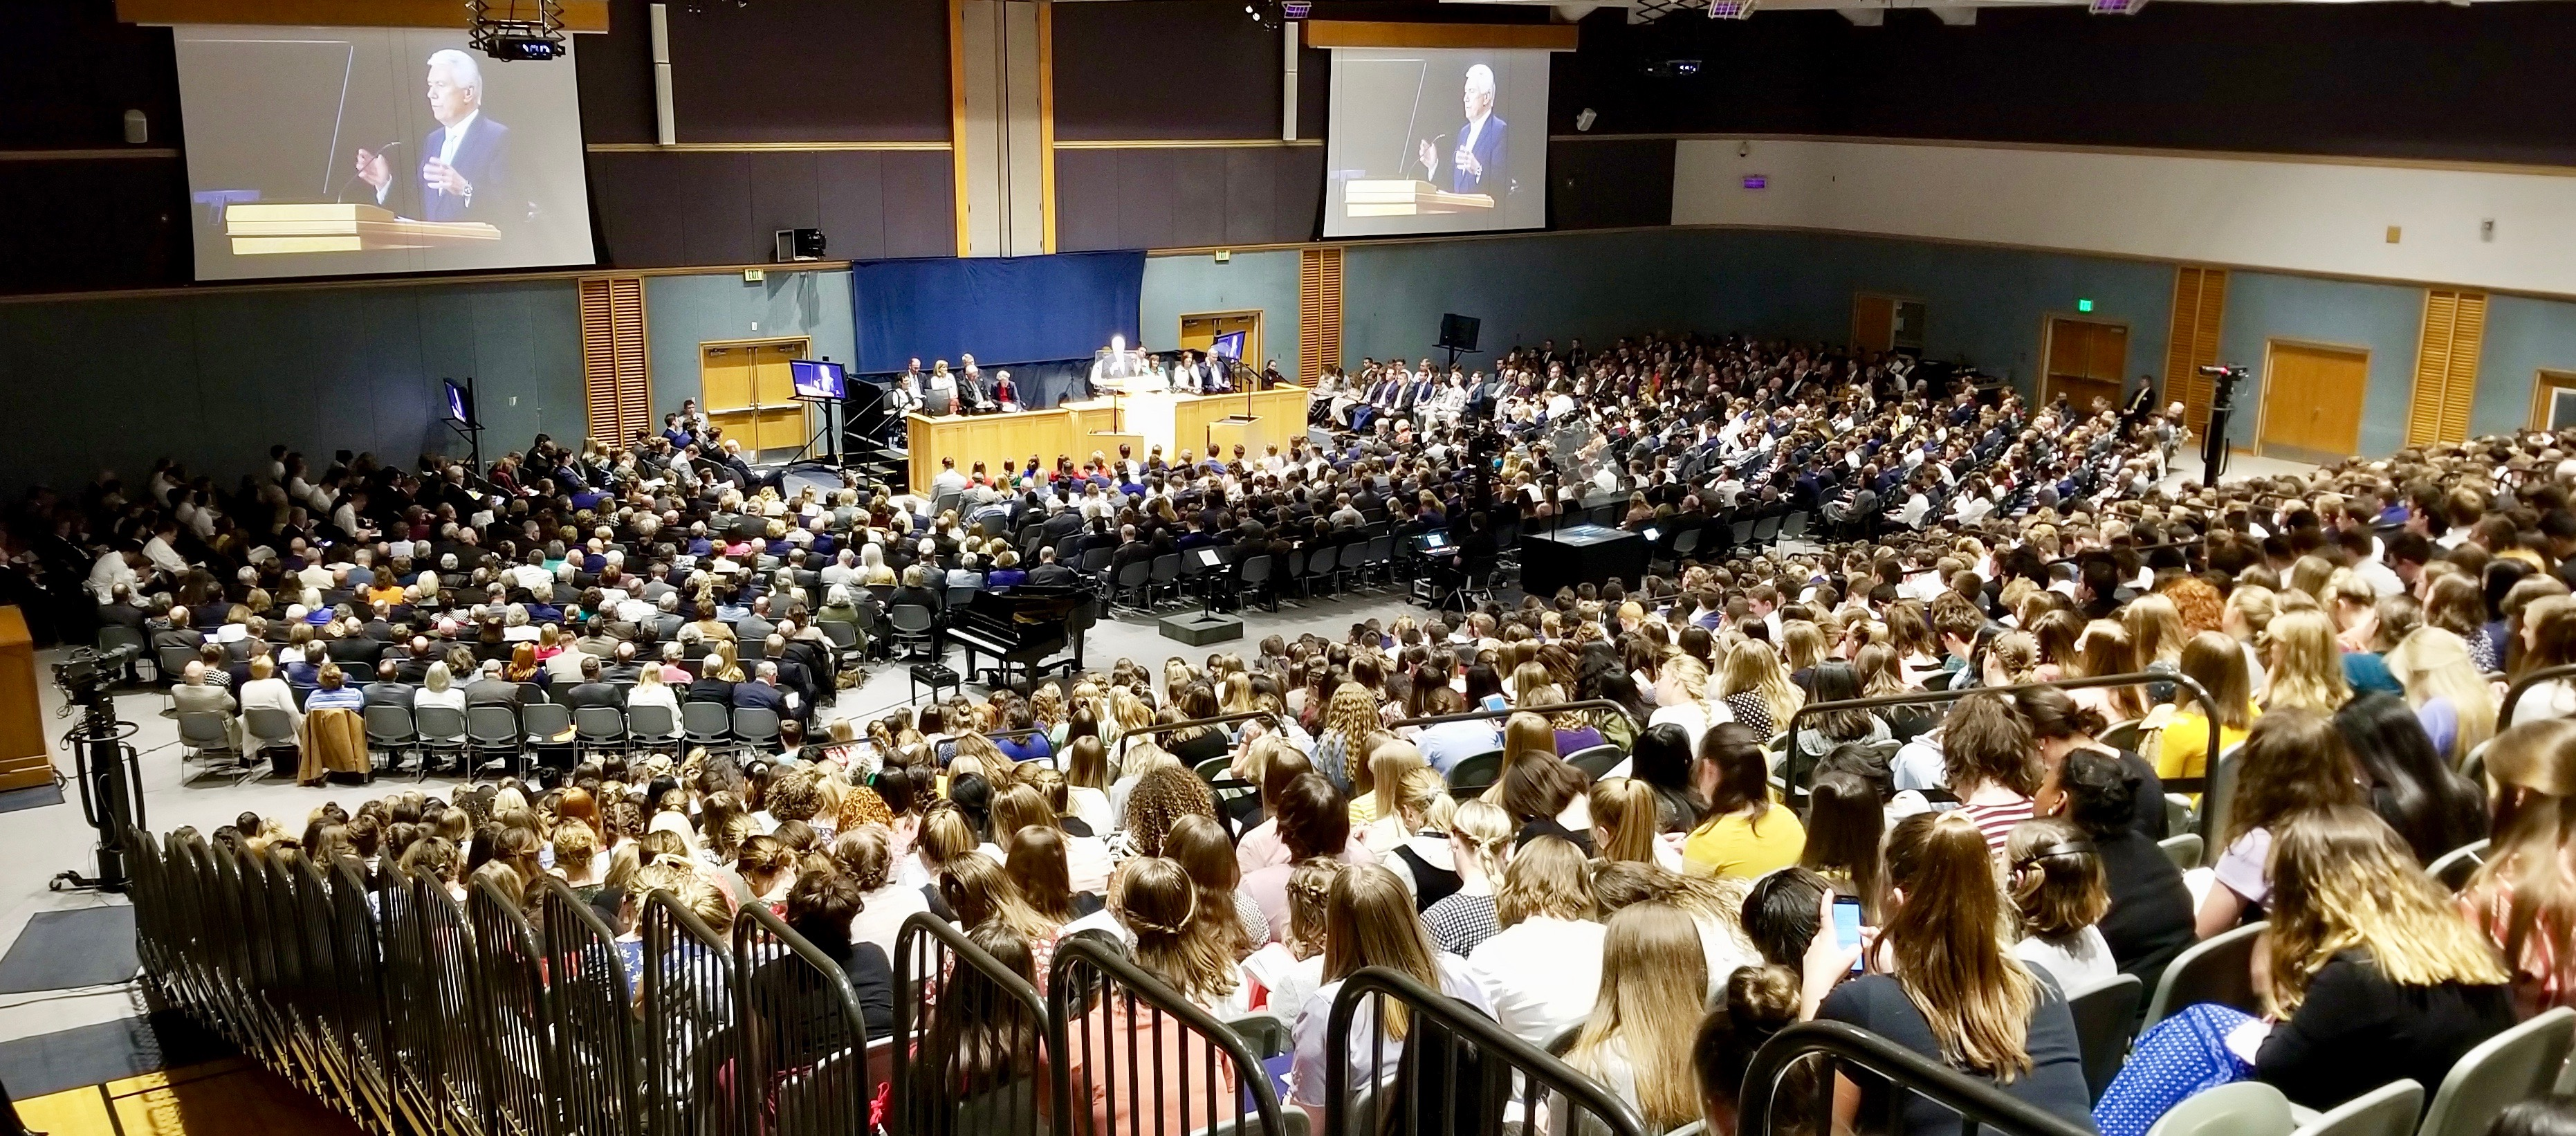 Elder Dieter F. Uchtdorf speaks to missionaries in a devotional at the Provo Missionary Training Center on Nov. 5, 2019.